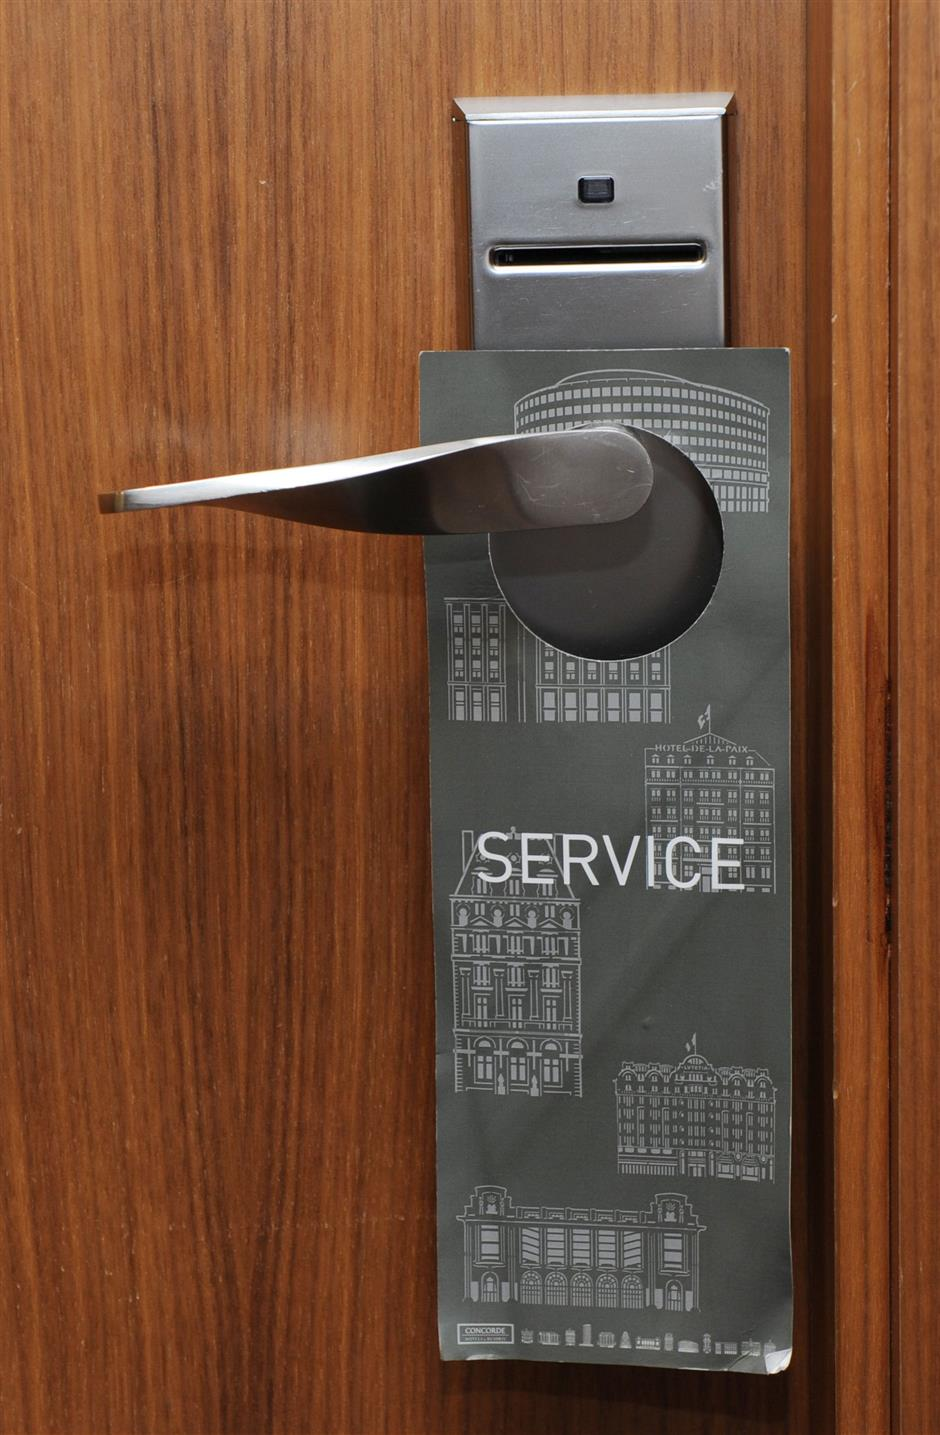 Your hotel room's electronic door lock can be hacked | The Star Online